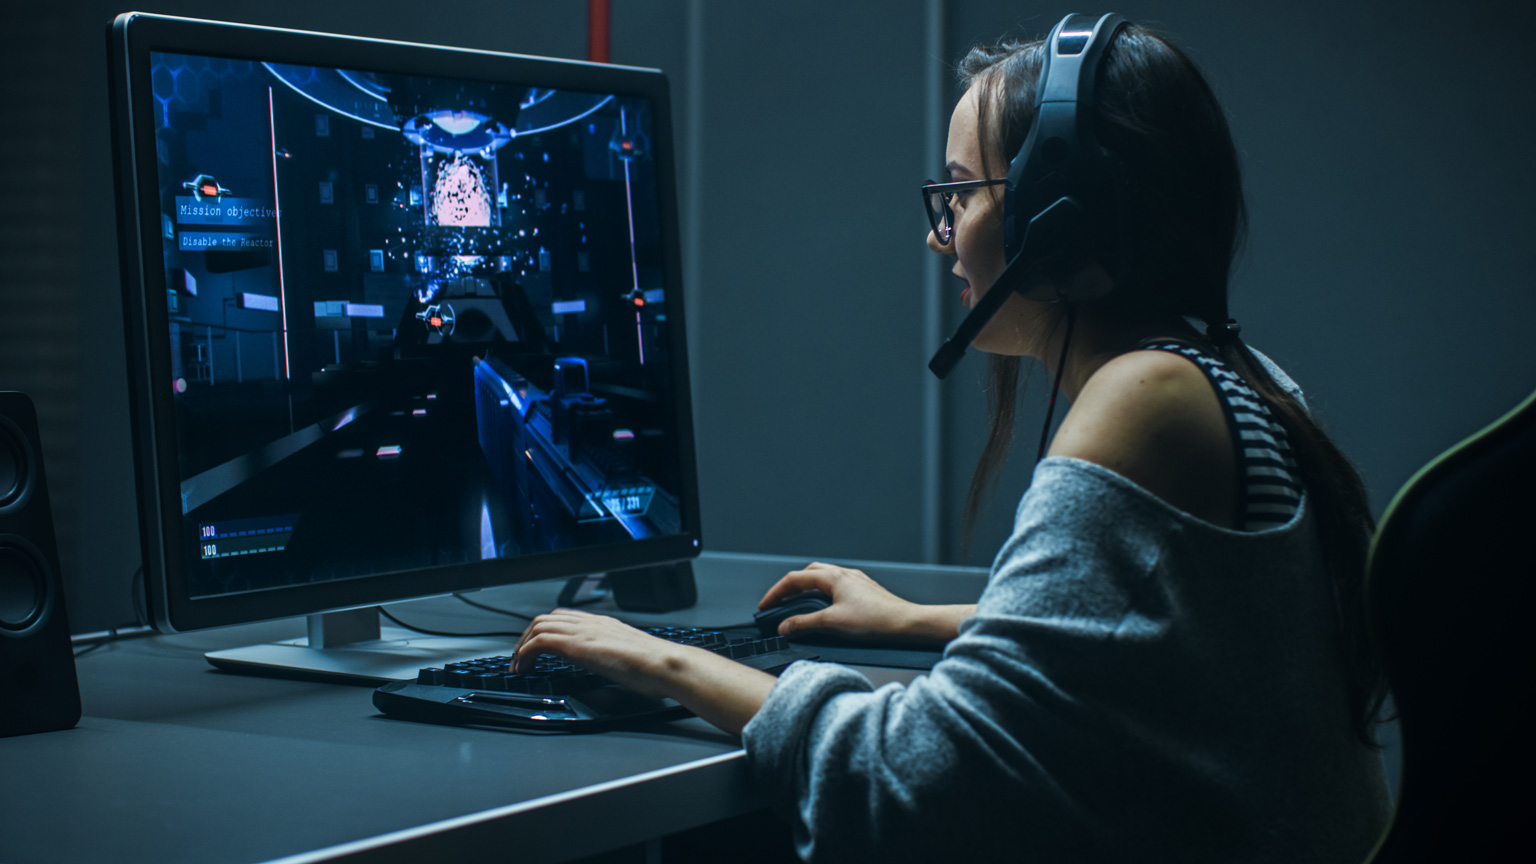 3 Online Gaming Trends to Watch Out For in 2020